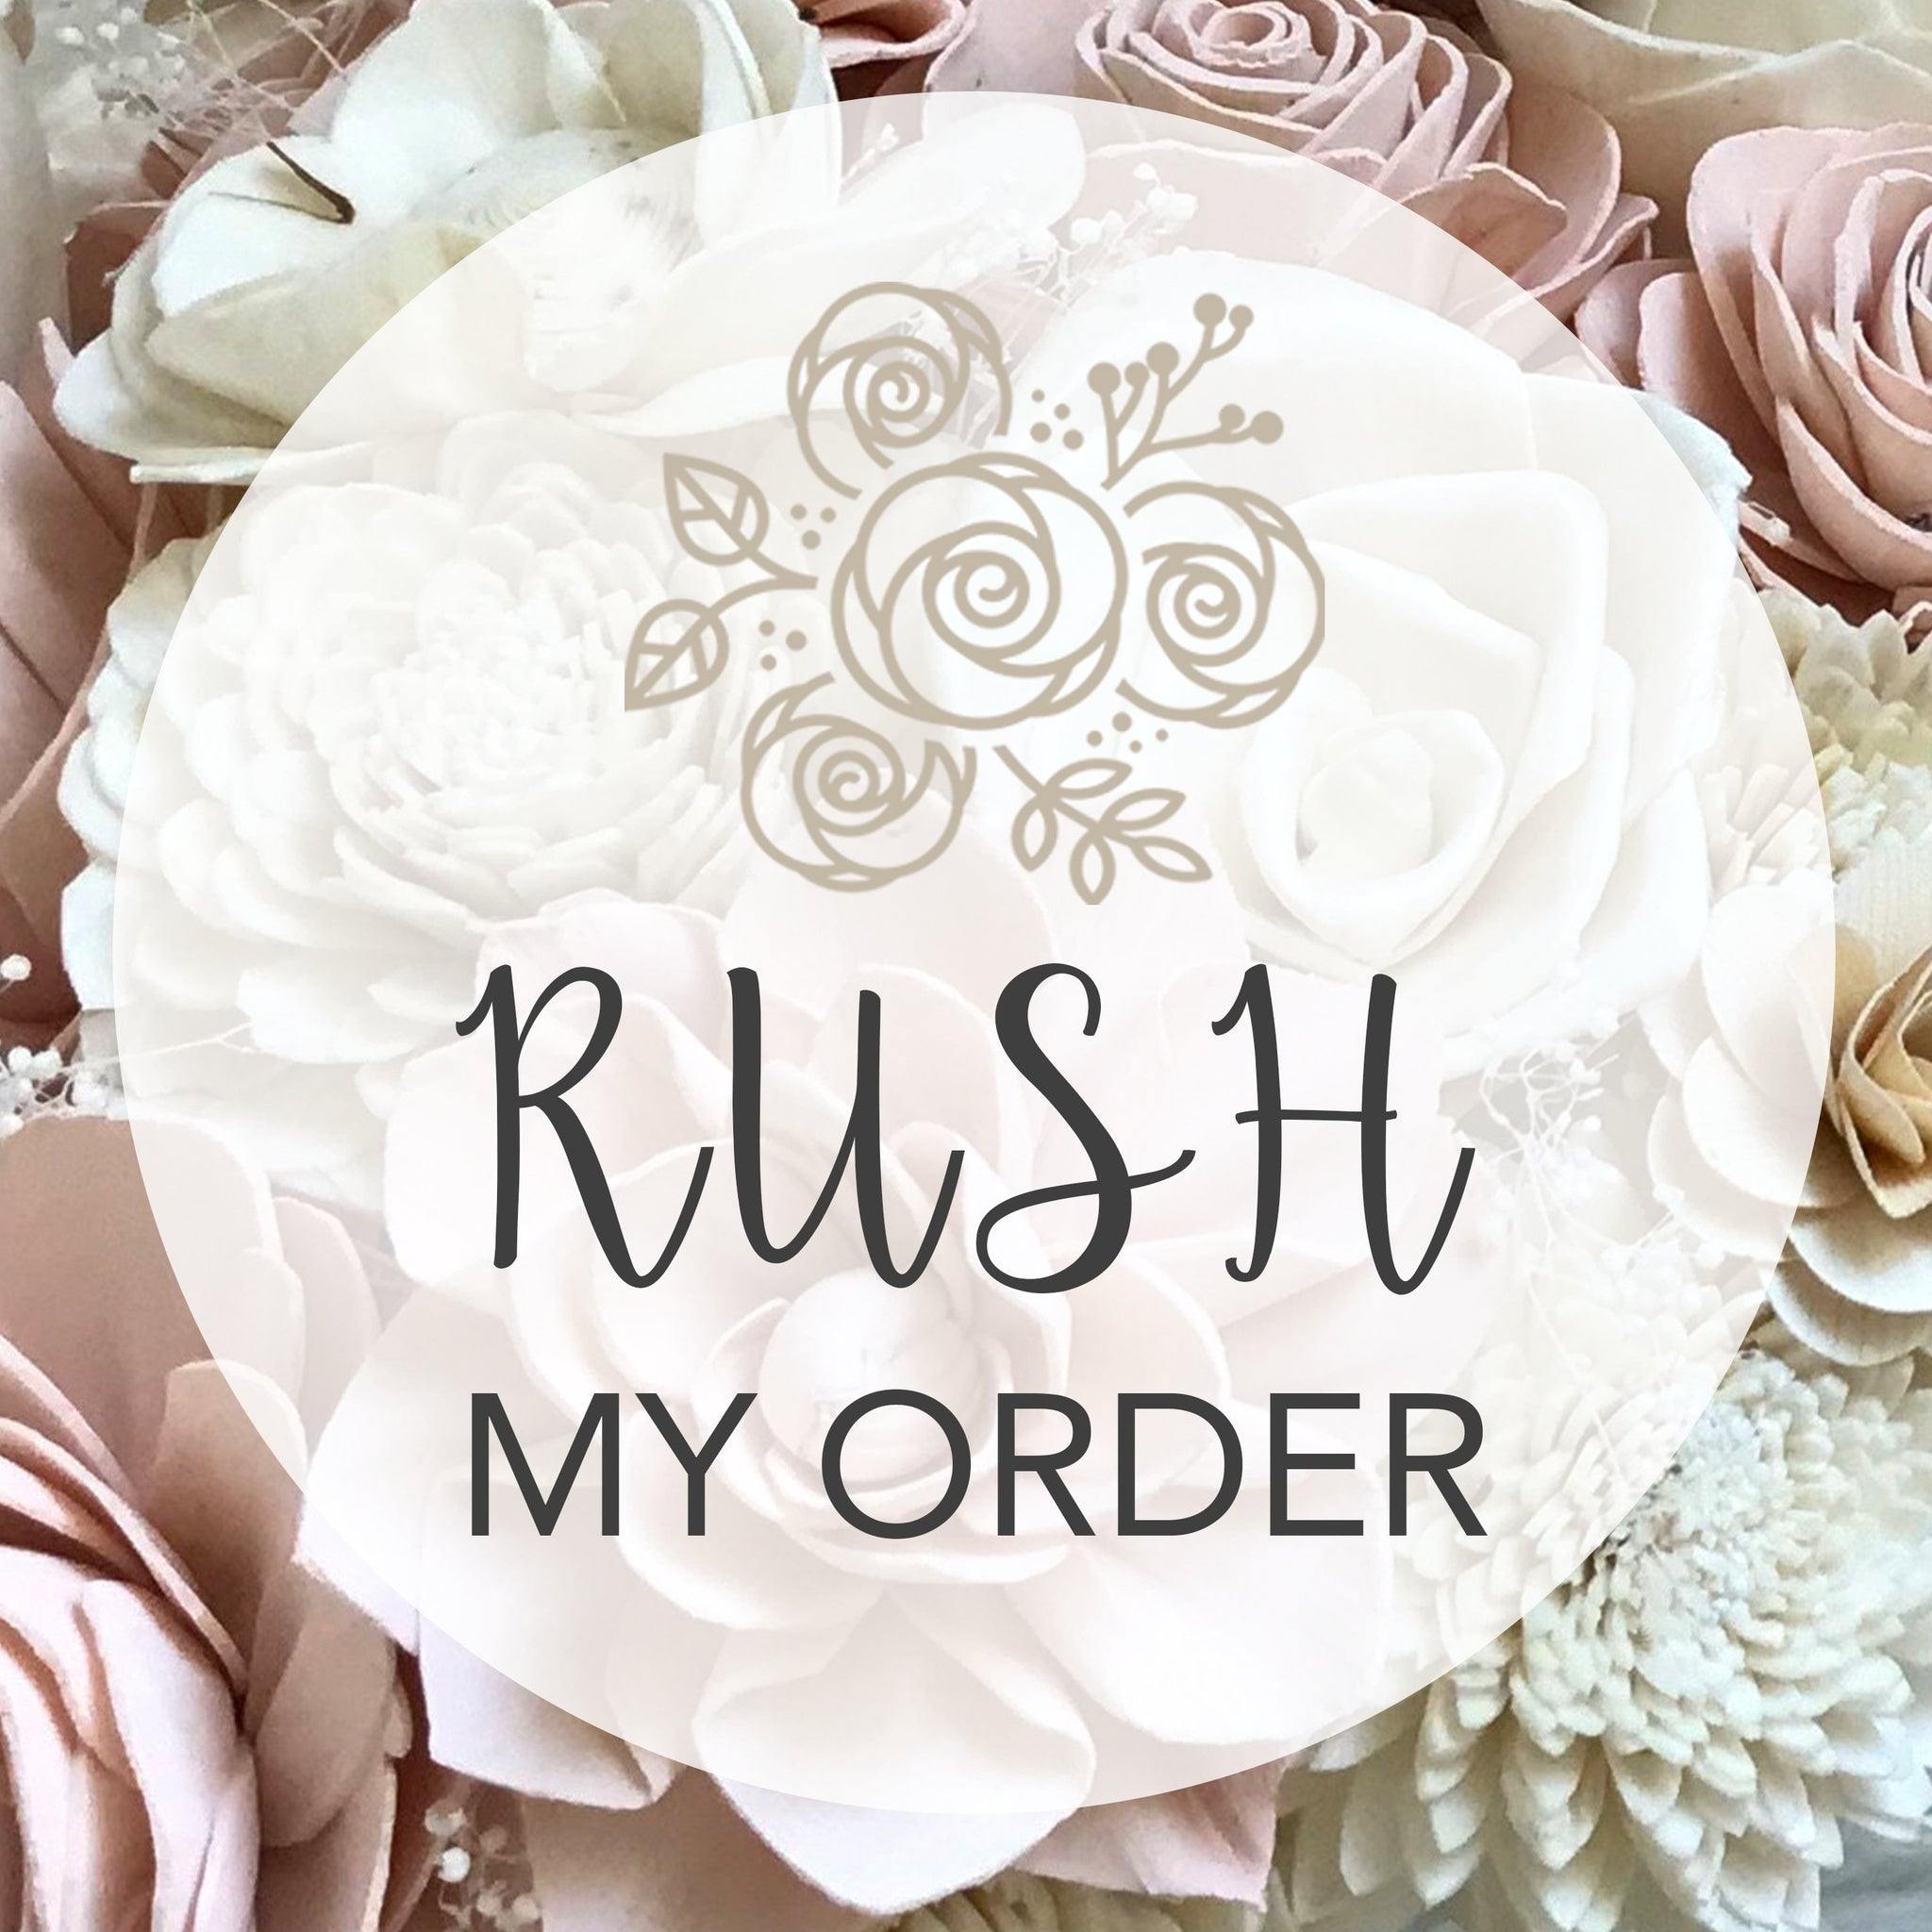 RUSH MY LOOSE Flowers - Process My Single Loose Flower Order within 3-5 Business Days